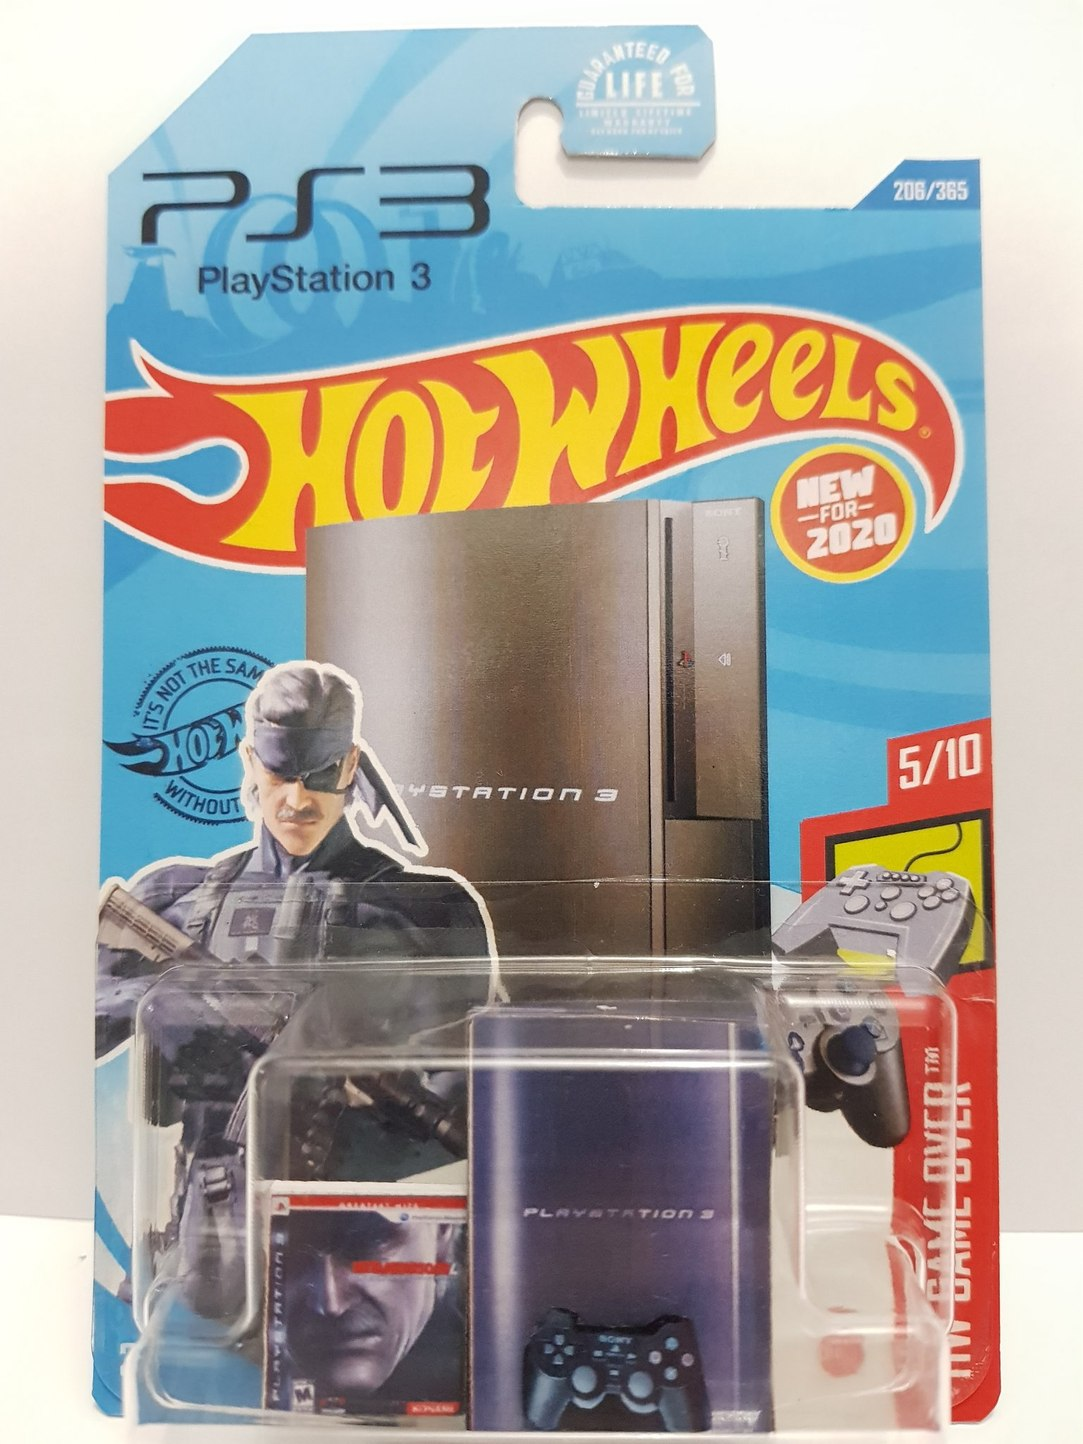 Sony PlayStation 3 hotwheels - meme